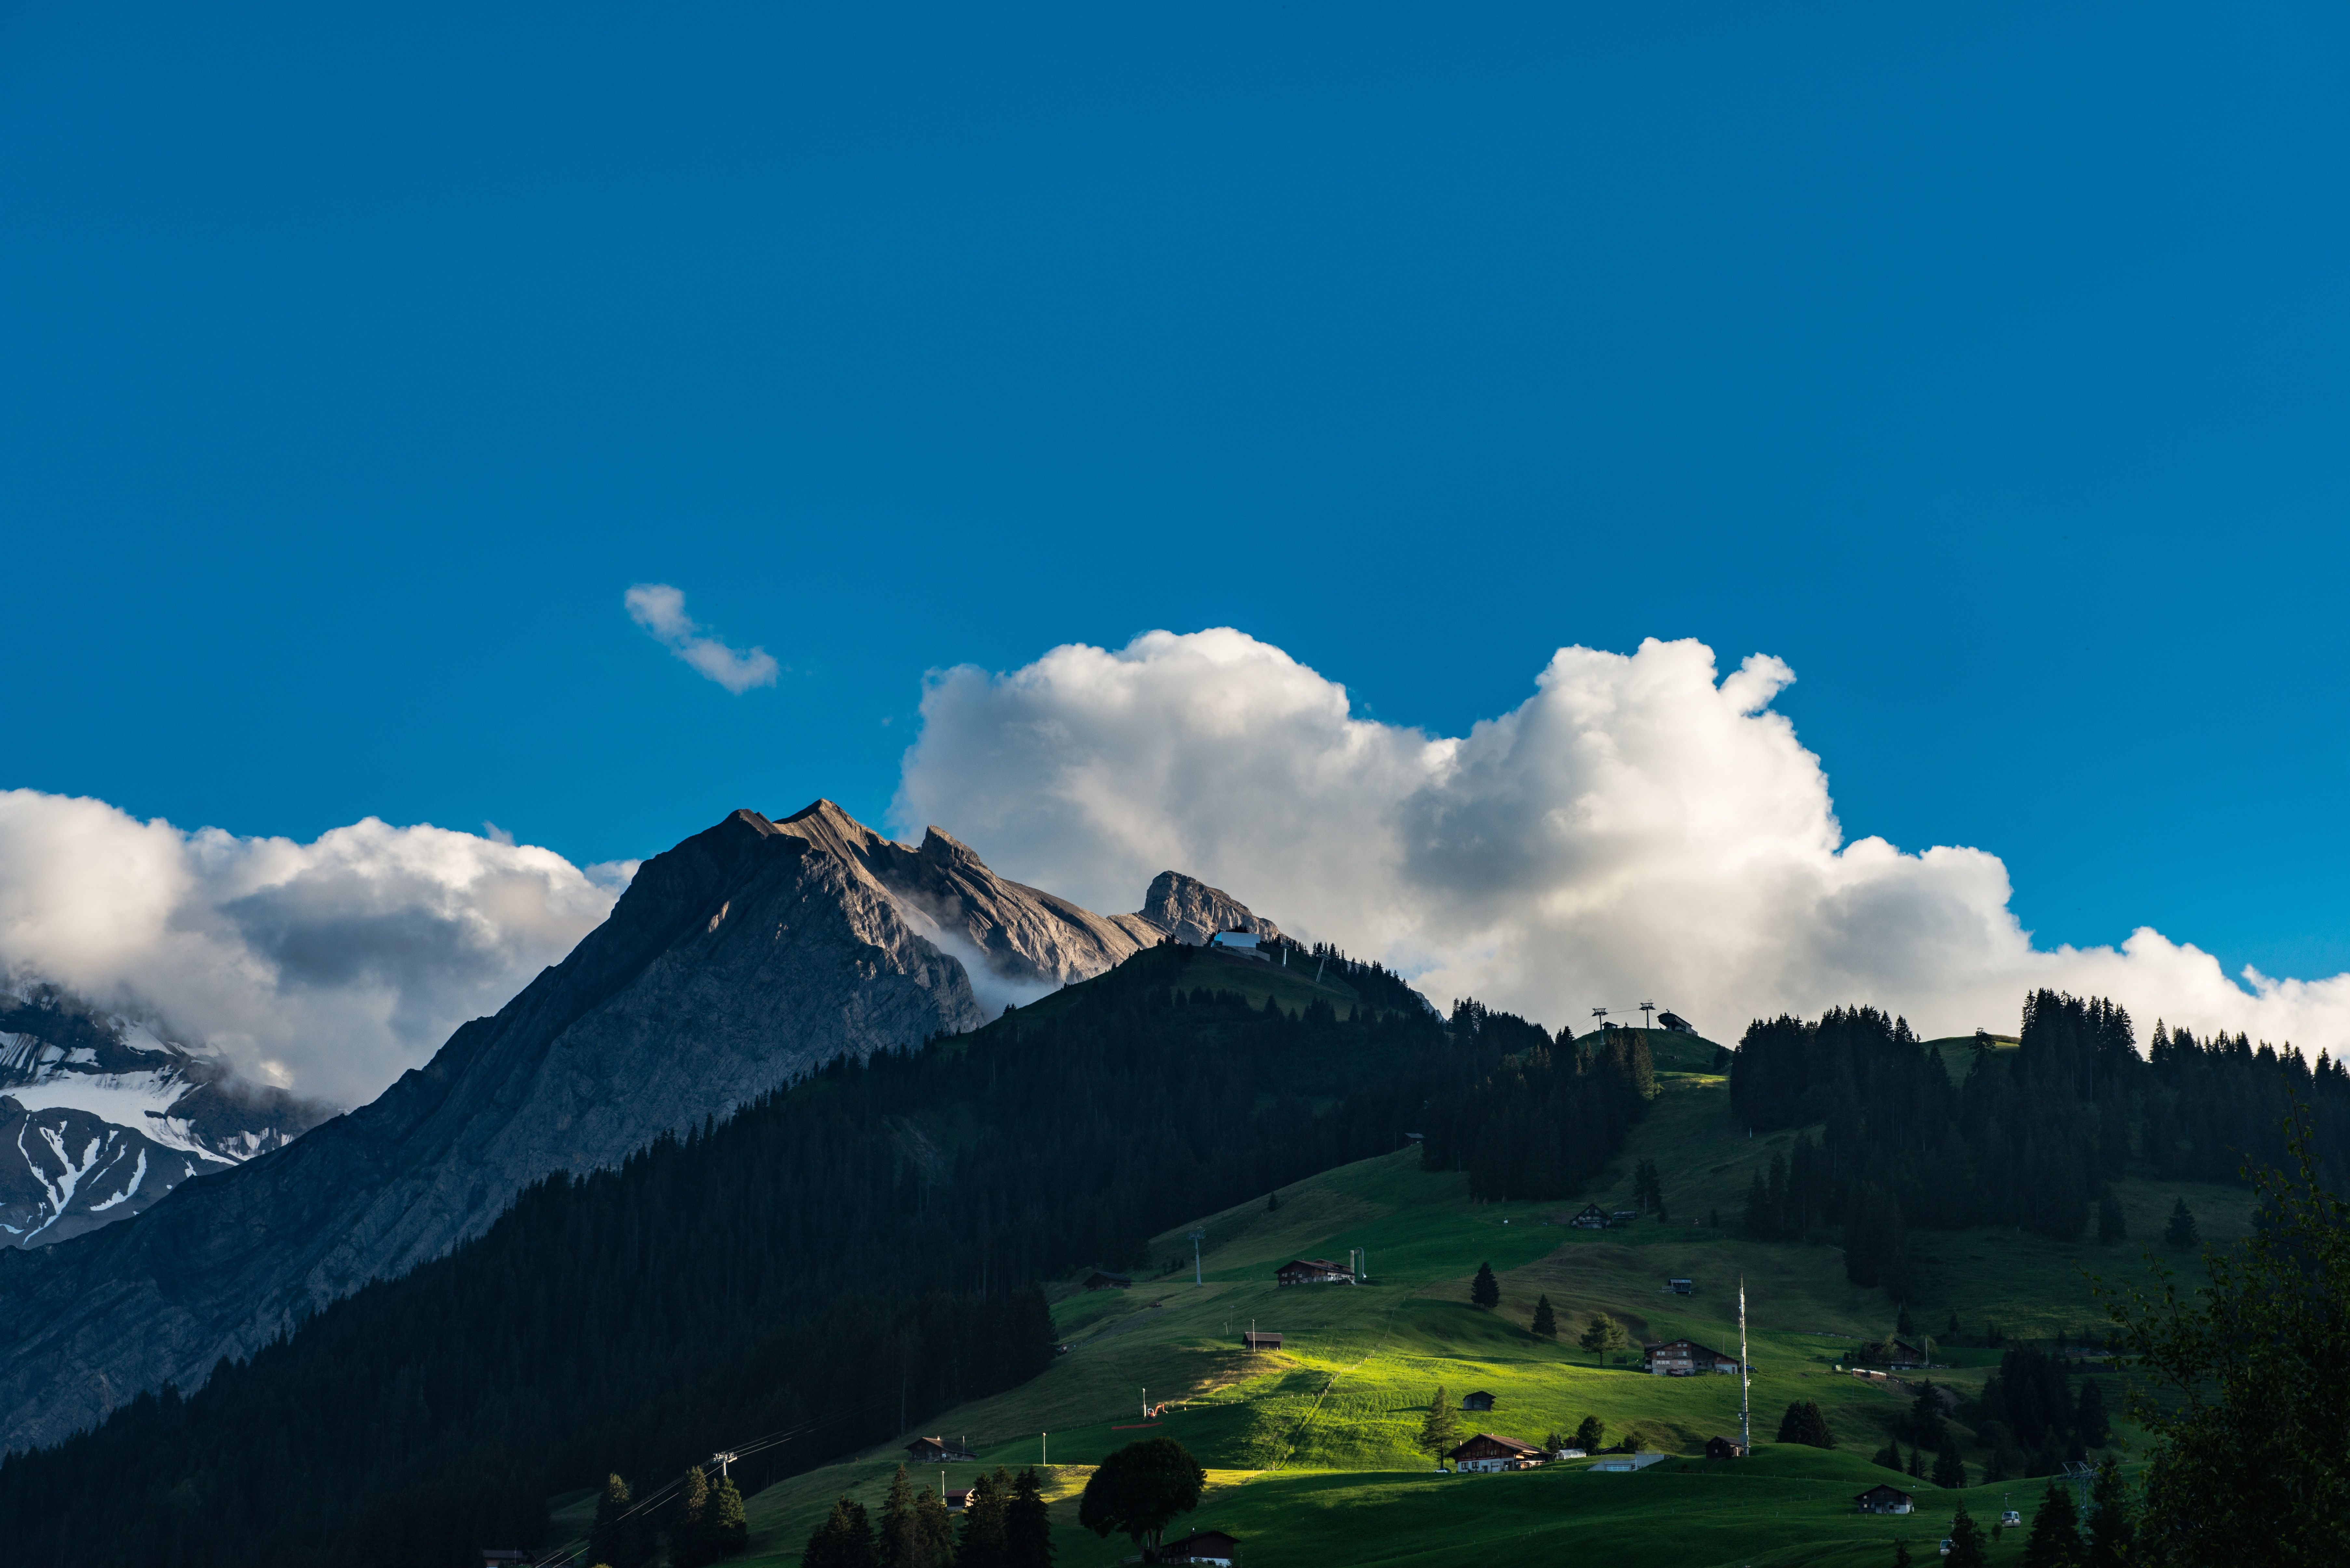 A grassy mountain shot with the clouds beyond the peak in Adelboden village